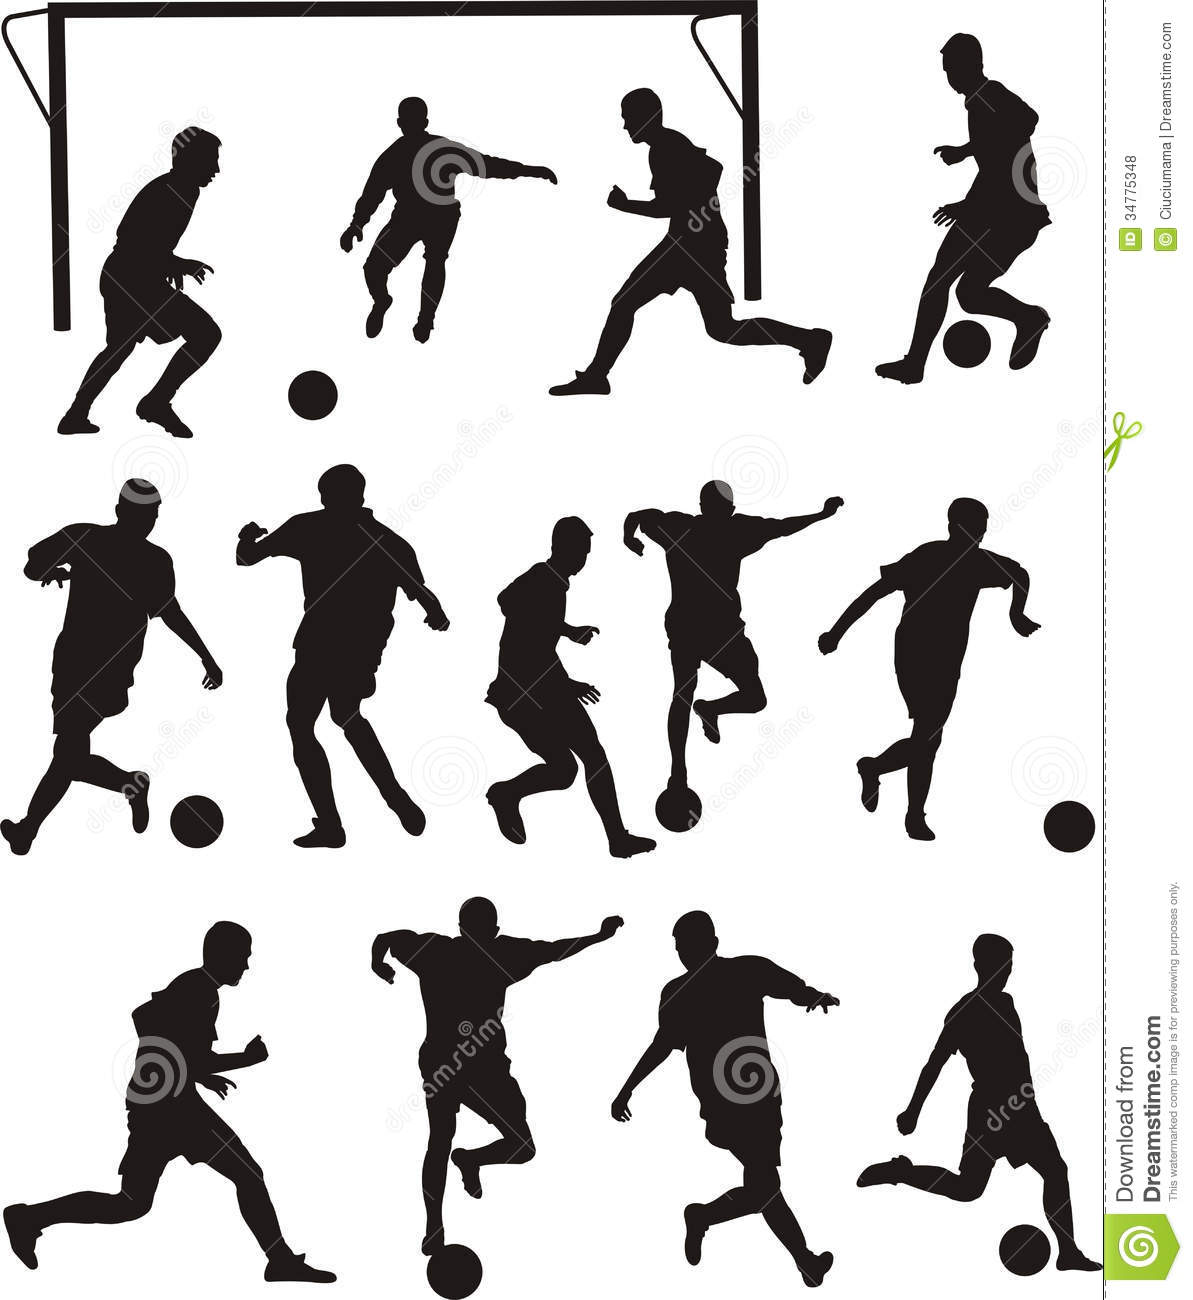 Soccer Or Football Icons Royalty Free Stock Photos